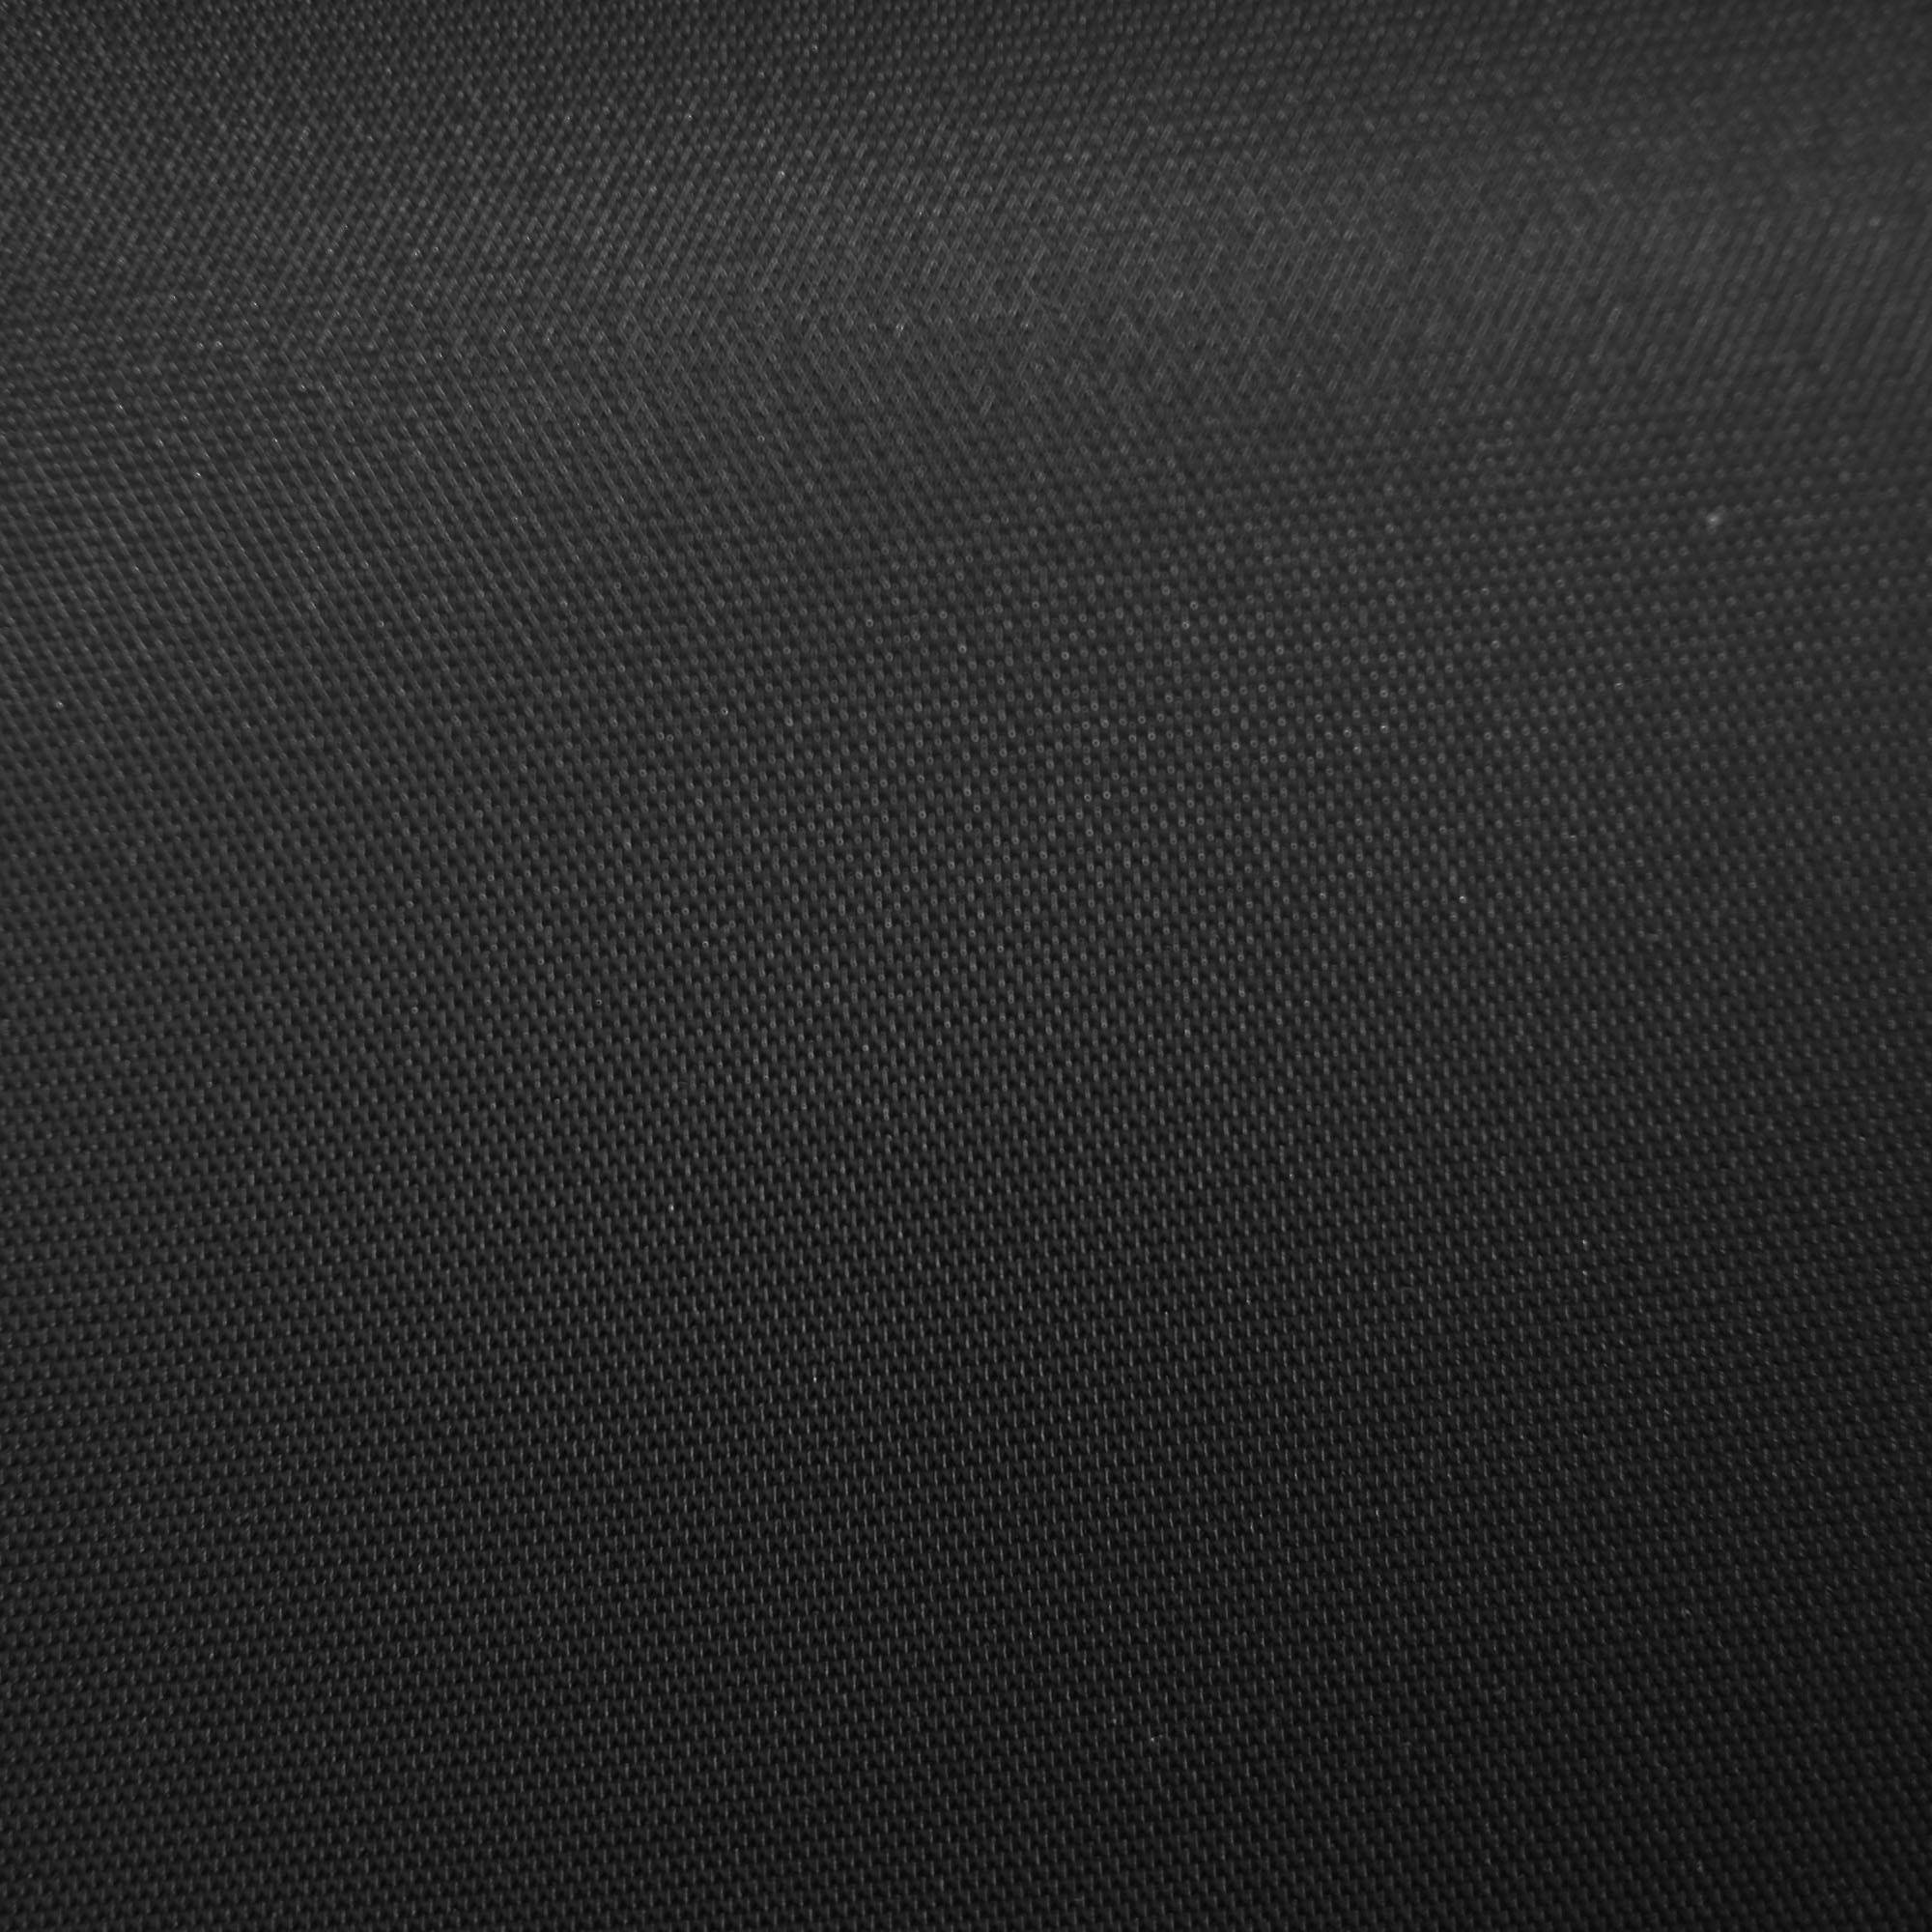 Savage Infinity Vinyl Background 8 X 10 Matte Black